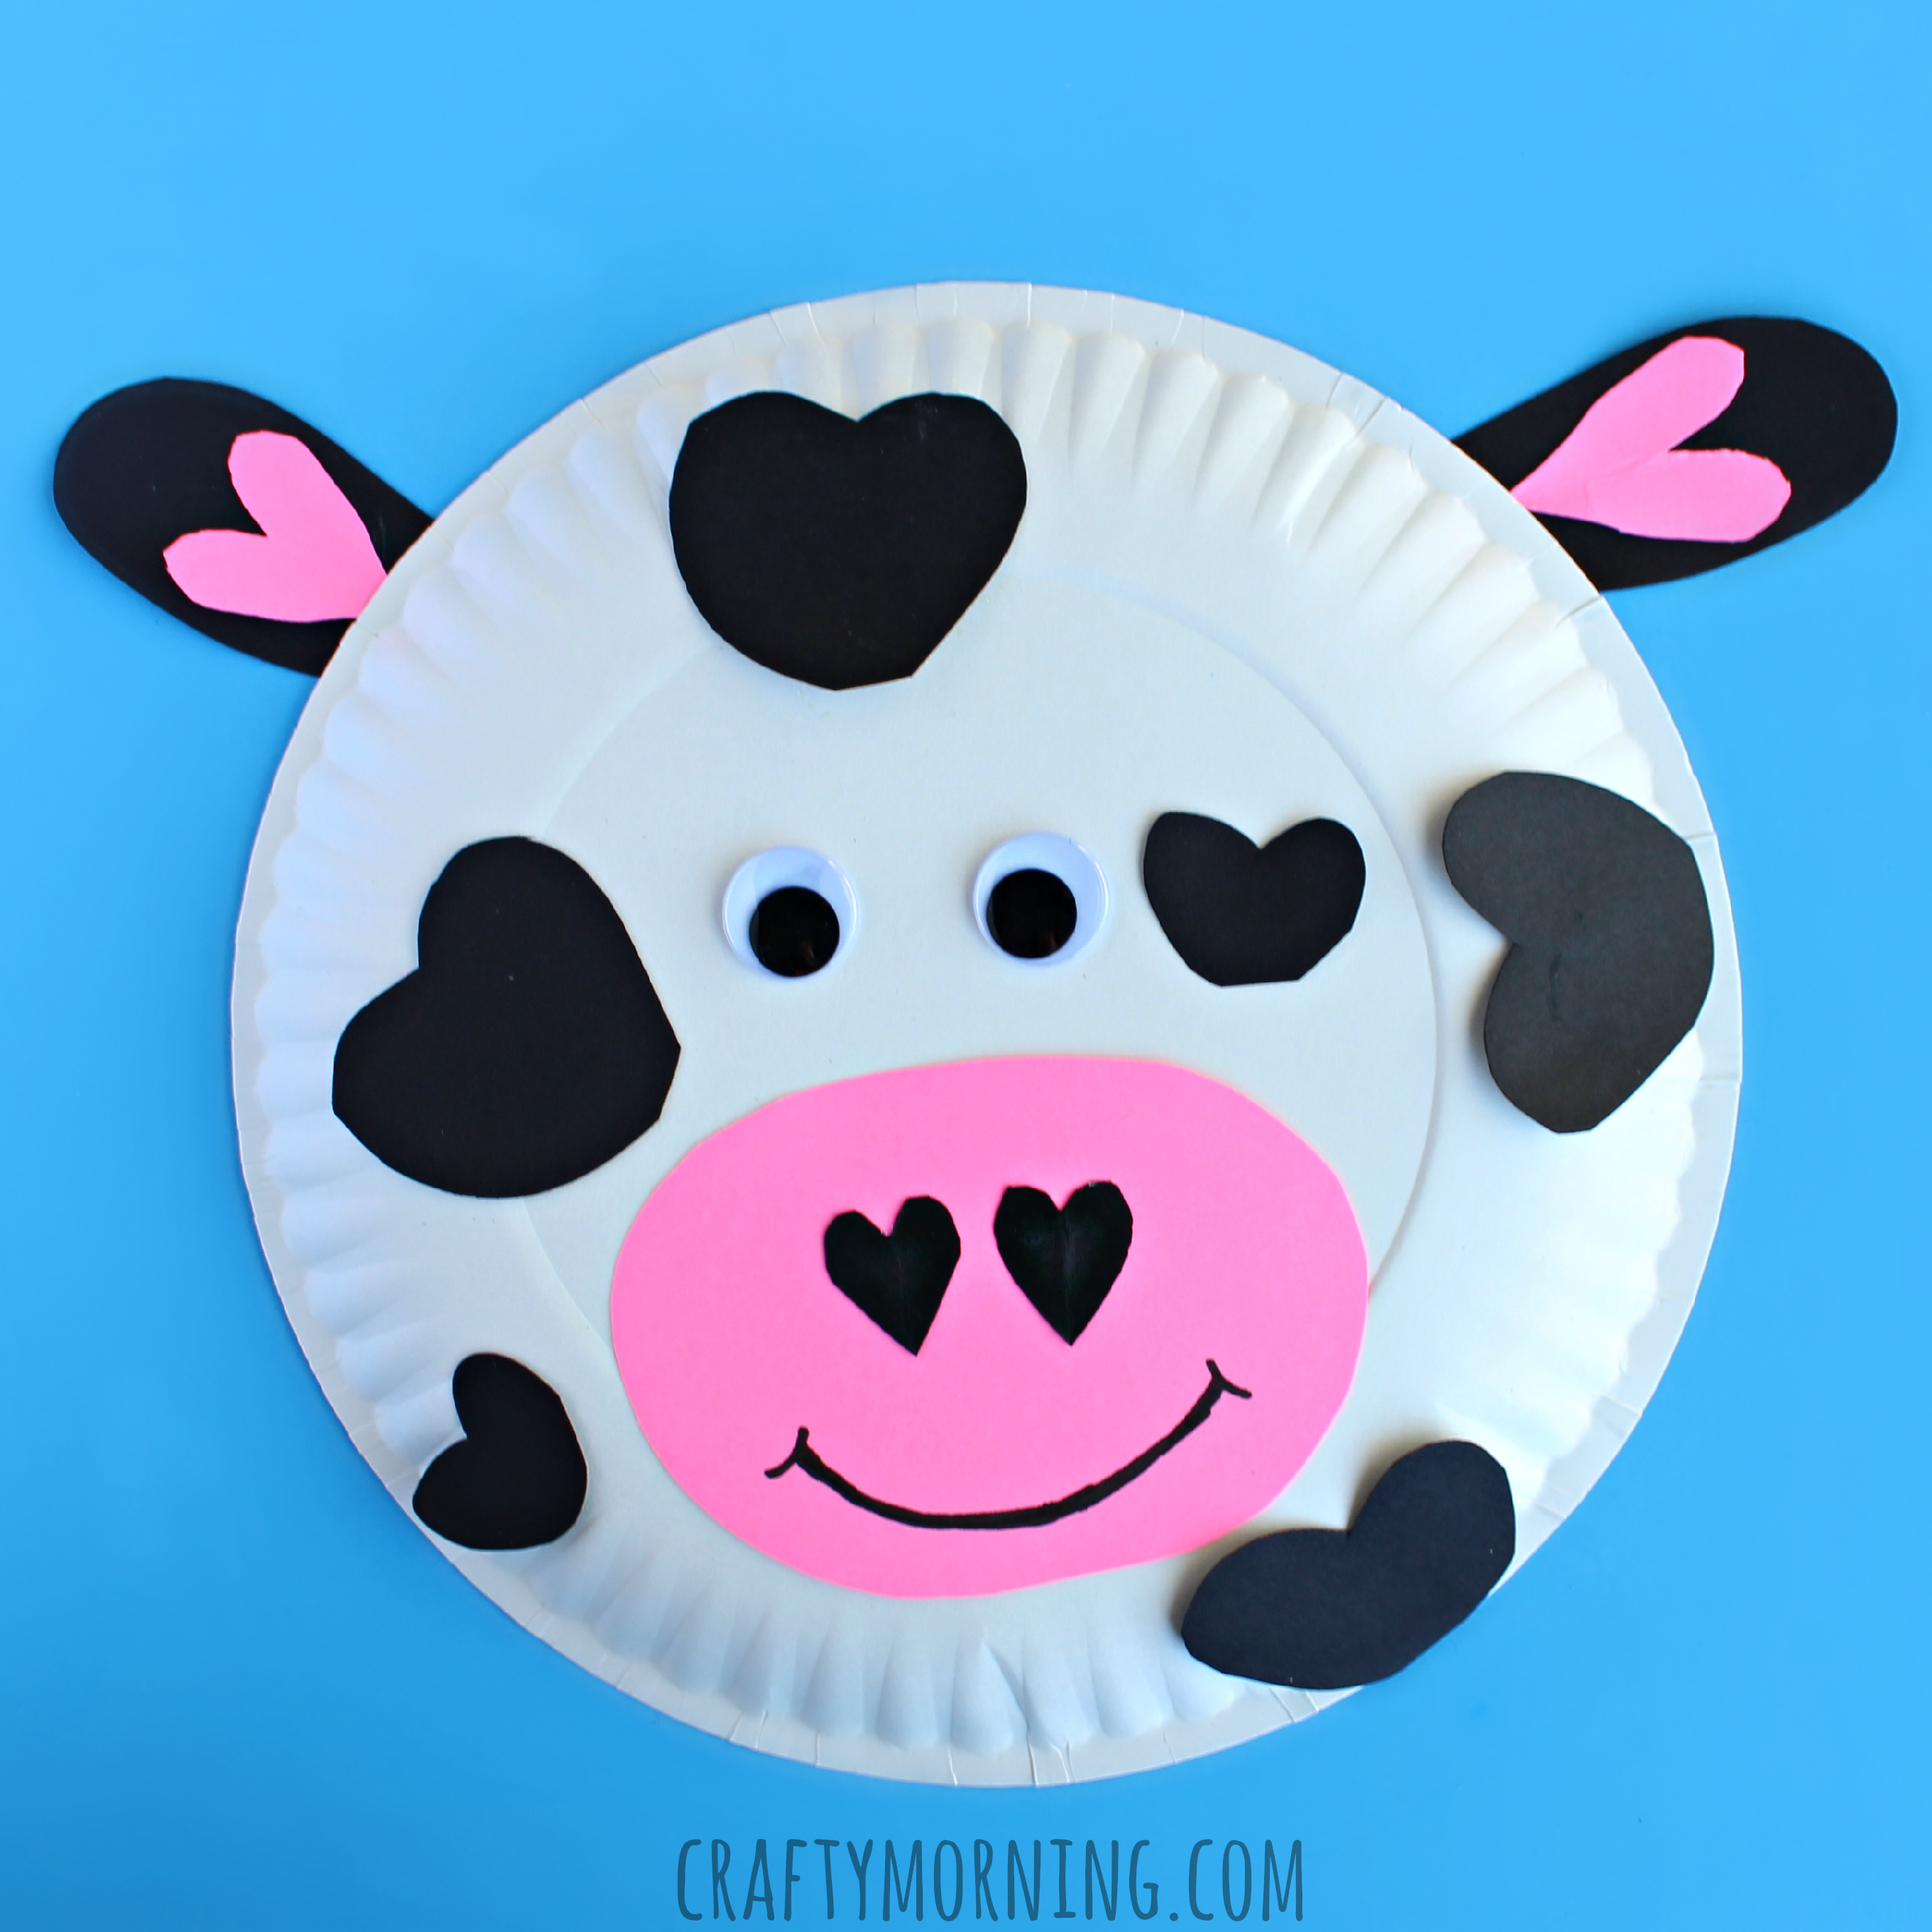 heart-paper-plate-cow-valentine-craft-for-kids & Paper Plate Cow Valentine Craft for Kids - Crafty Morning